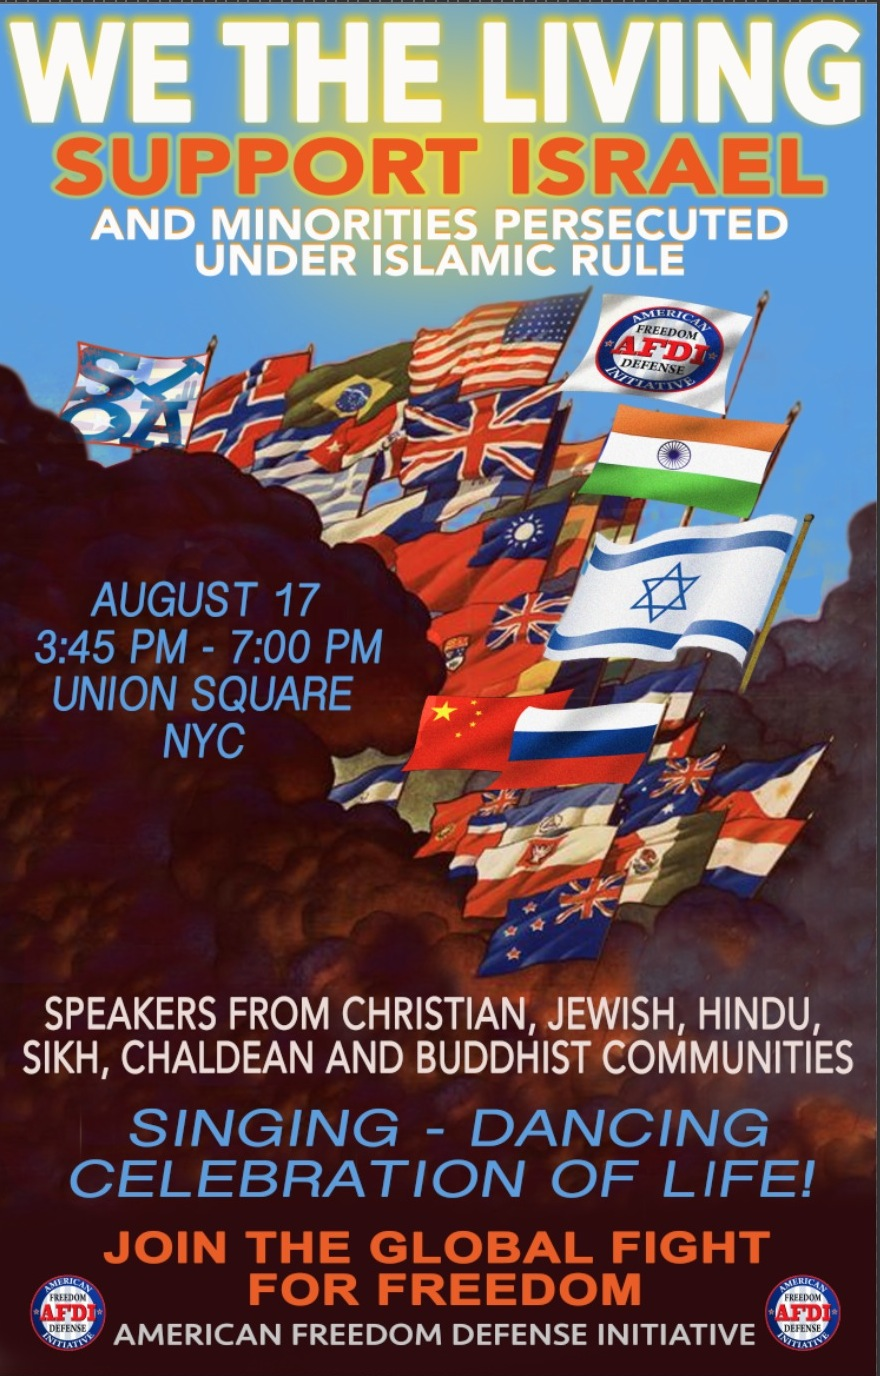 AFDI Rally: Support Israel and Persecuted Religious Minorities, Union Square, August 17th 4pm